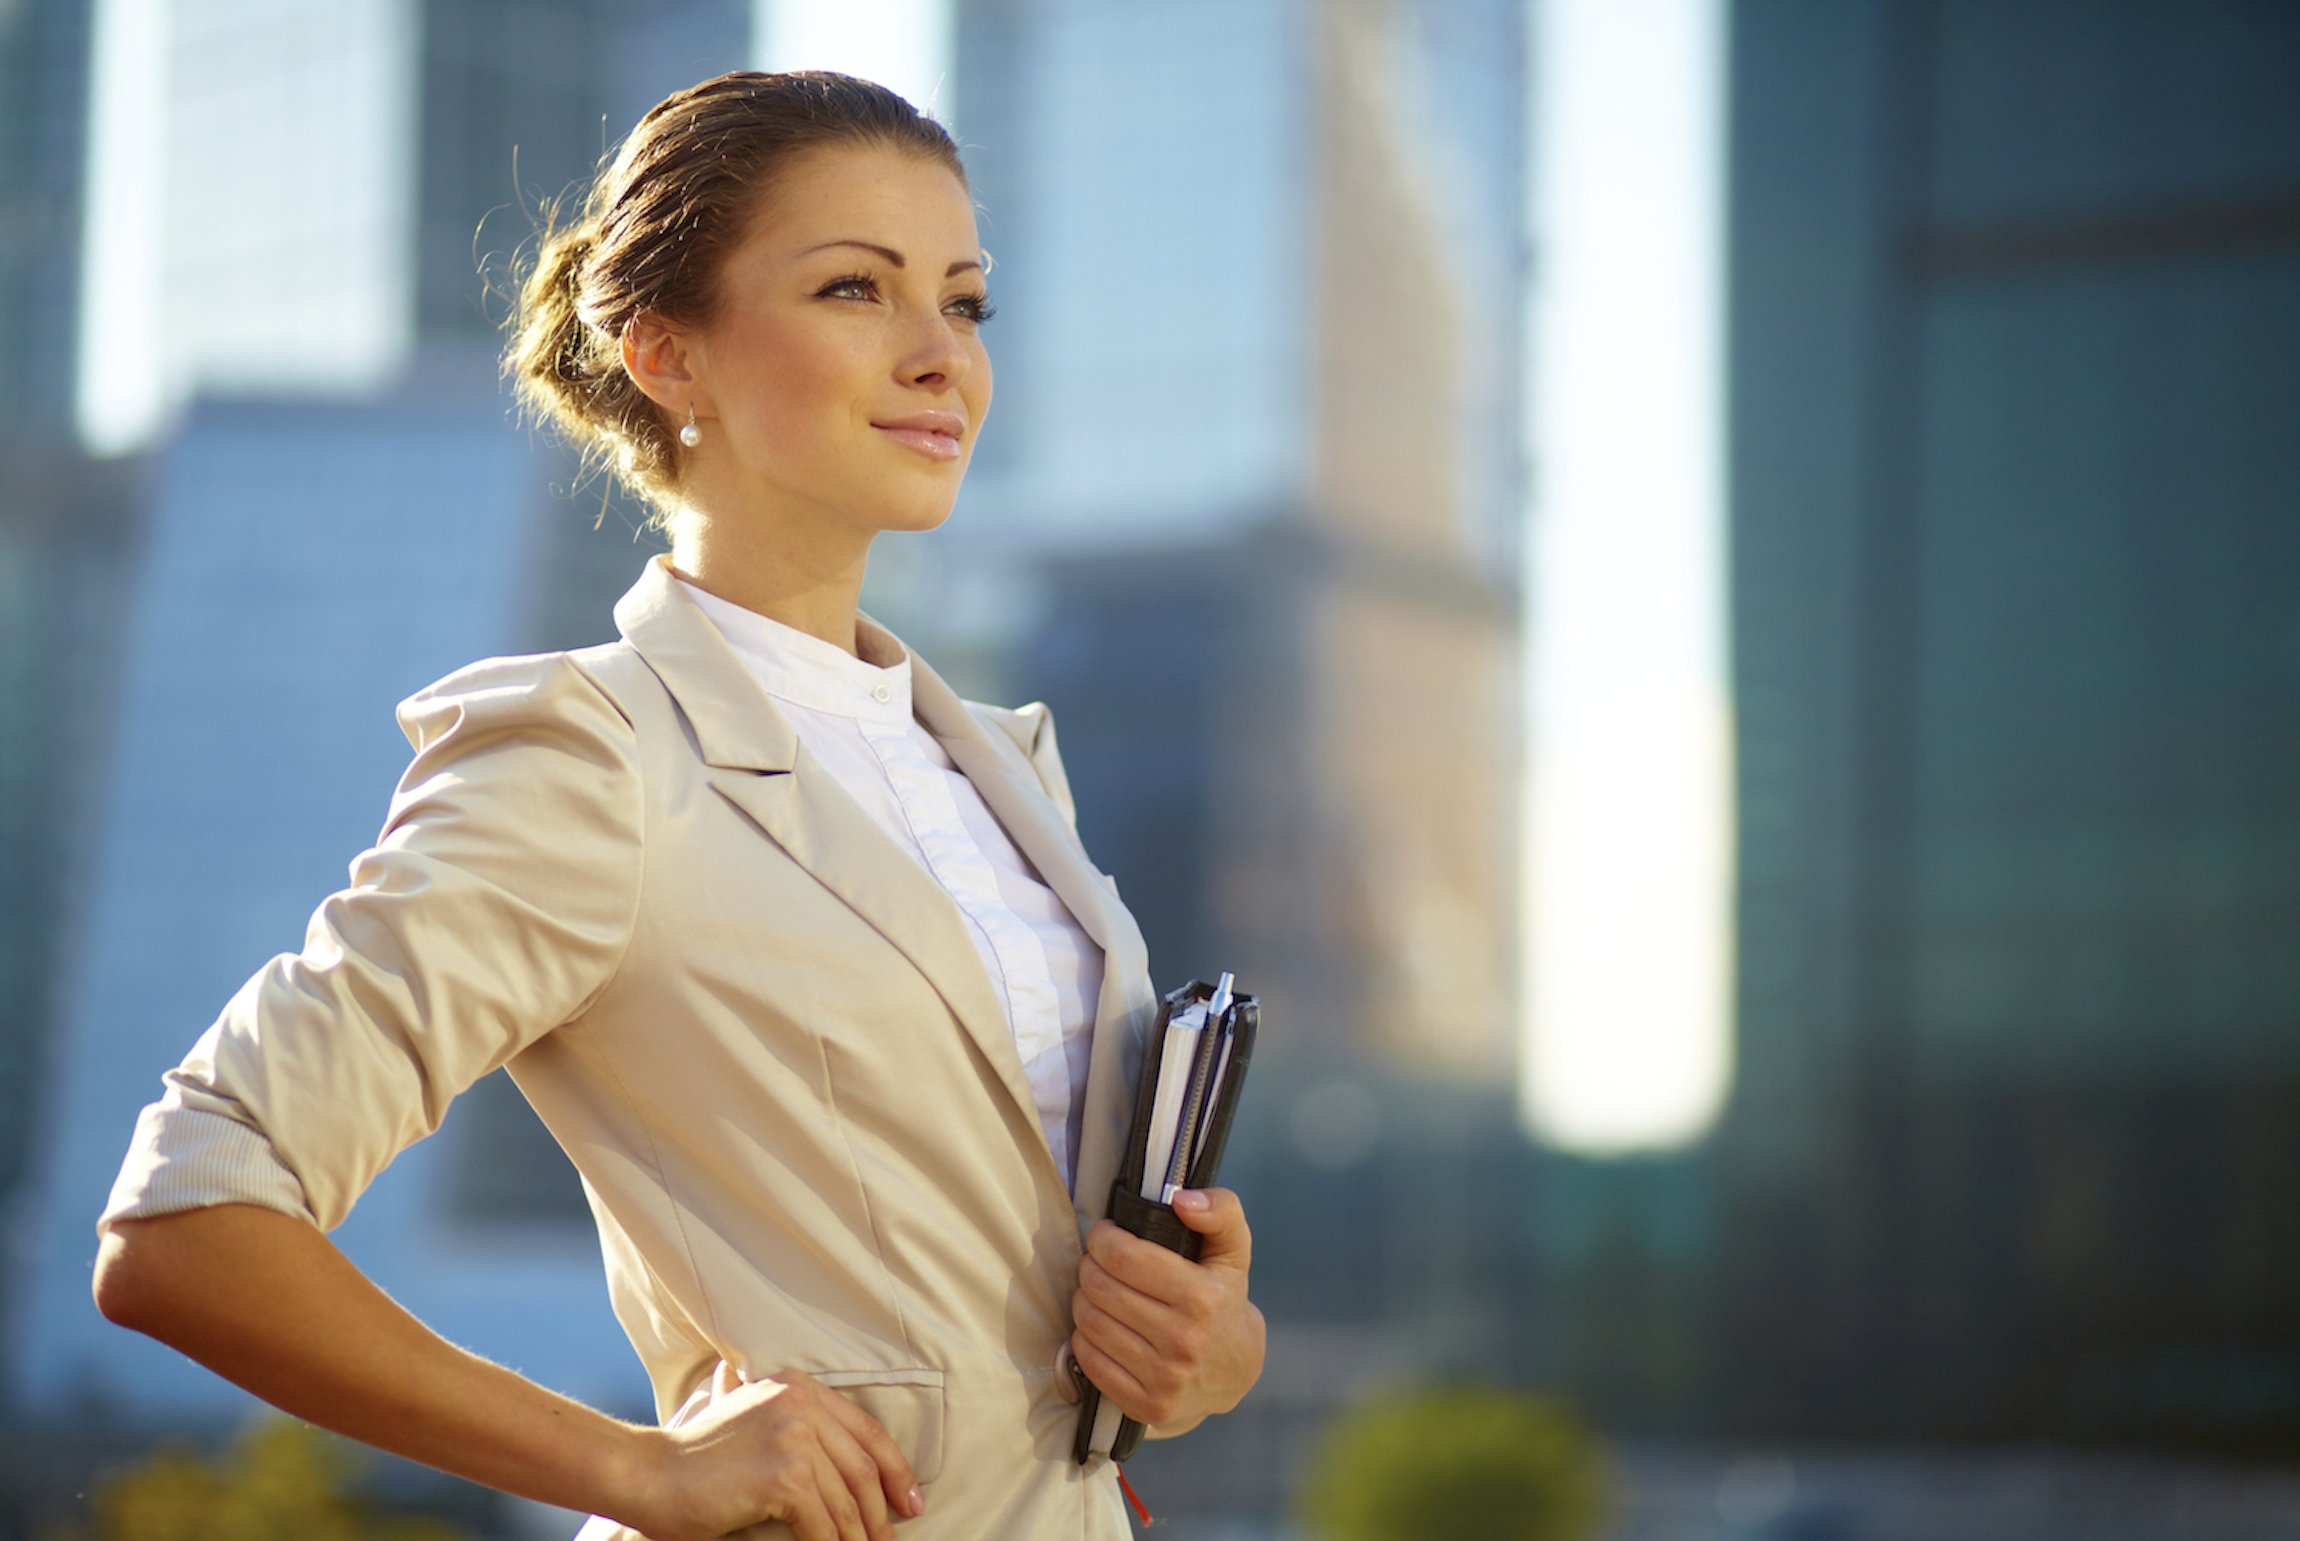 Portrait of cute young business woman outdoor over building background